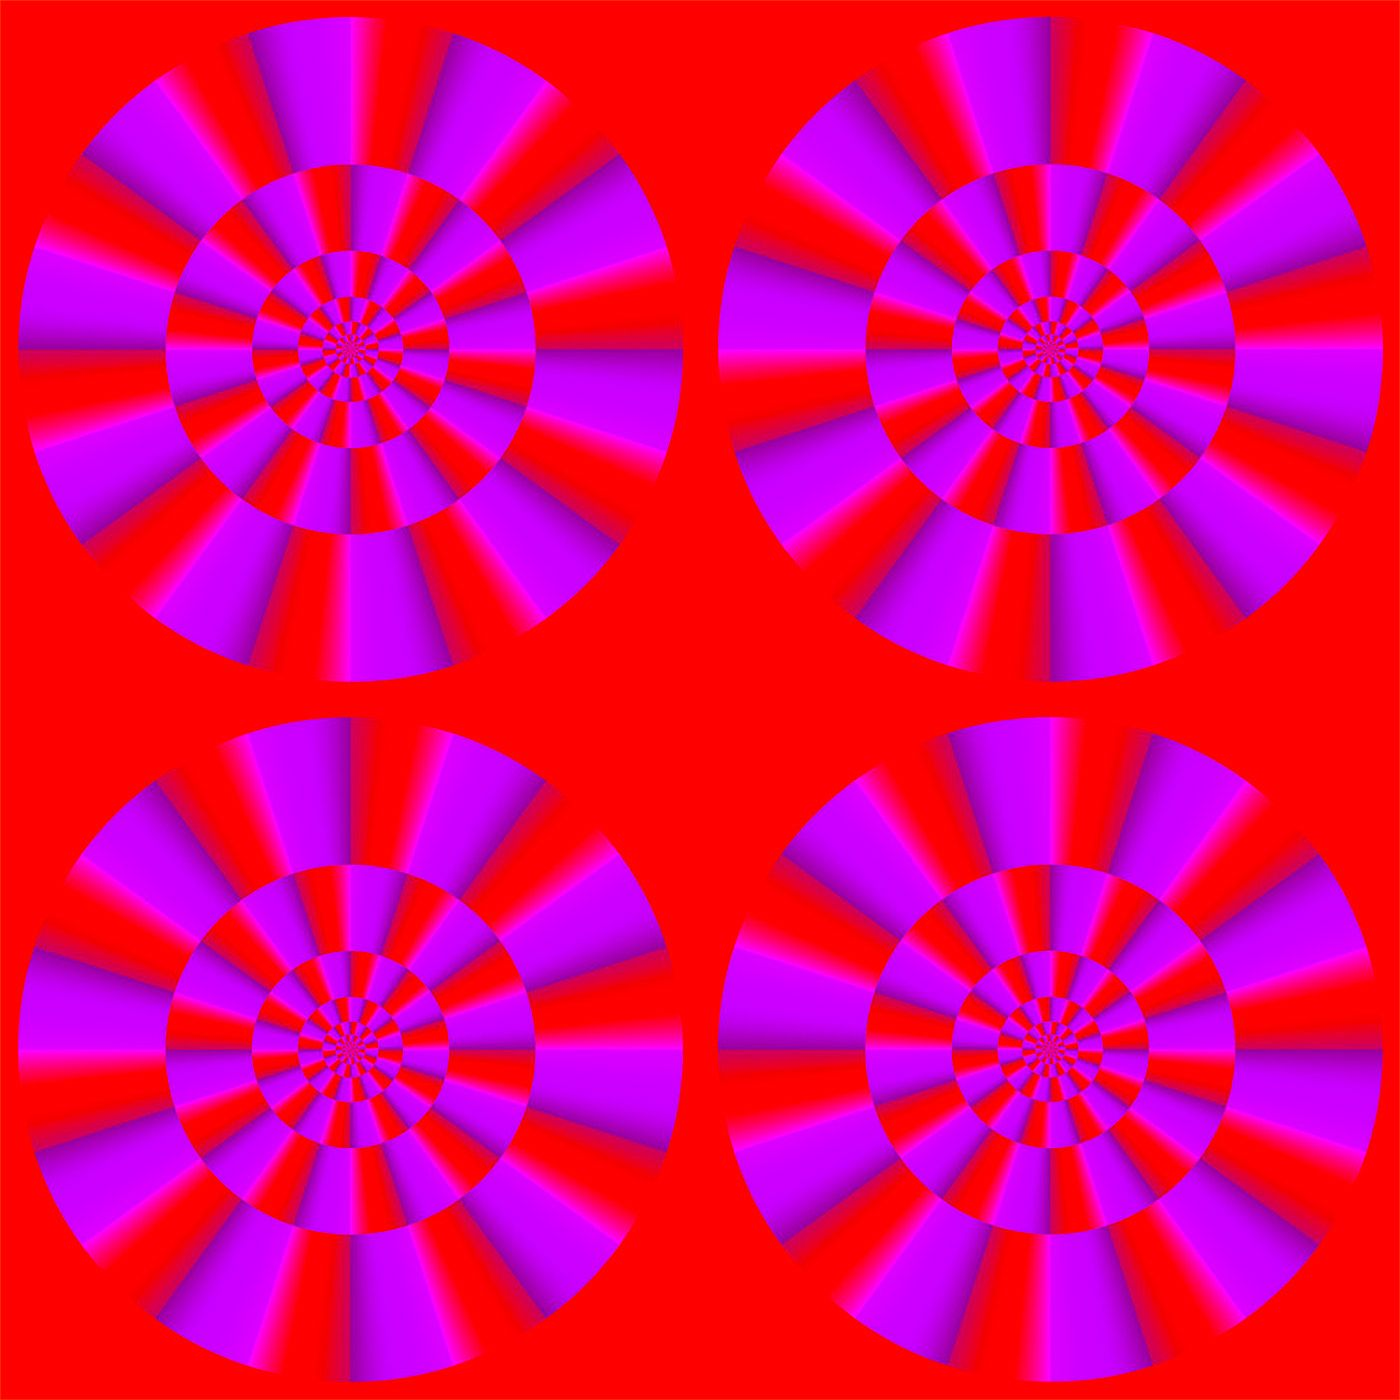 A Trick Of The Eye Optical Illusions By Akiyoshi Kitaoka